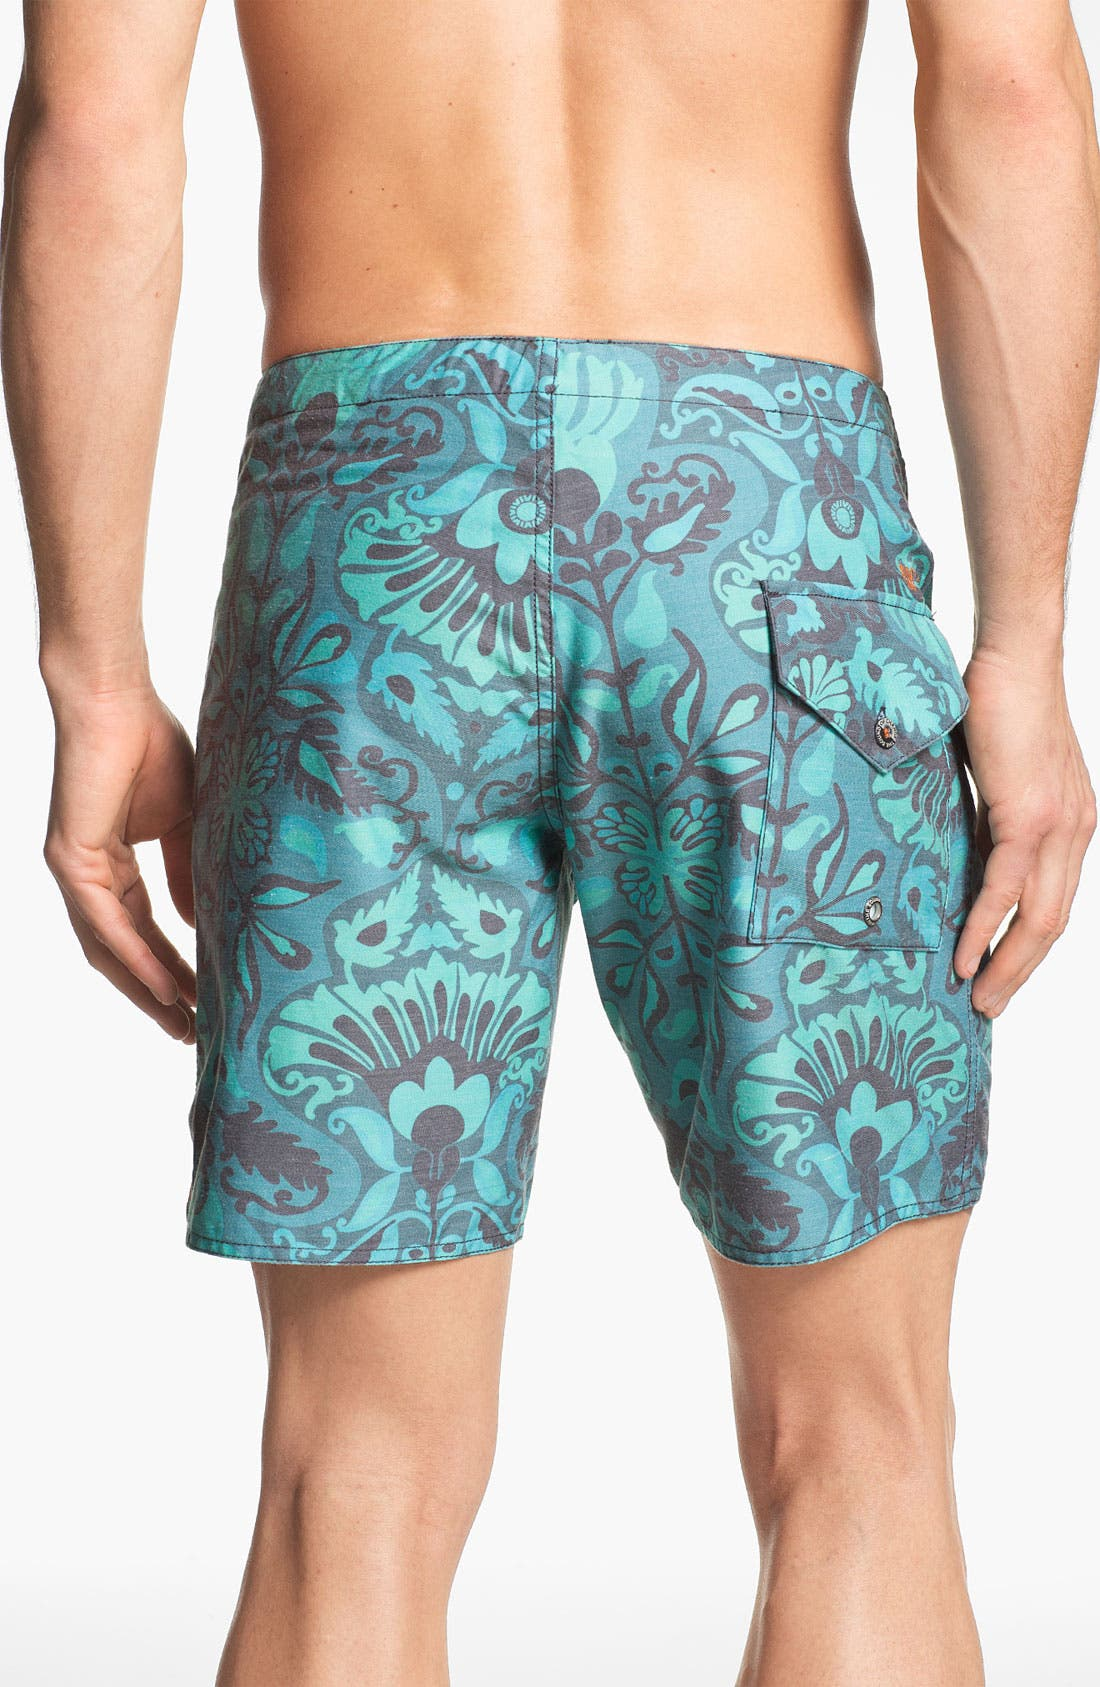 'NPJ 2' Board Shorts,                             Alternate thumbnail 2, color,                             400